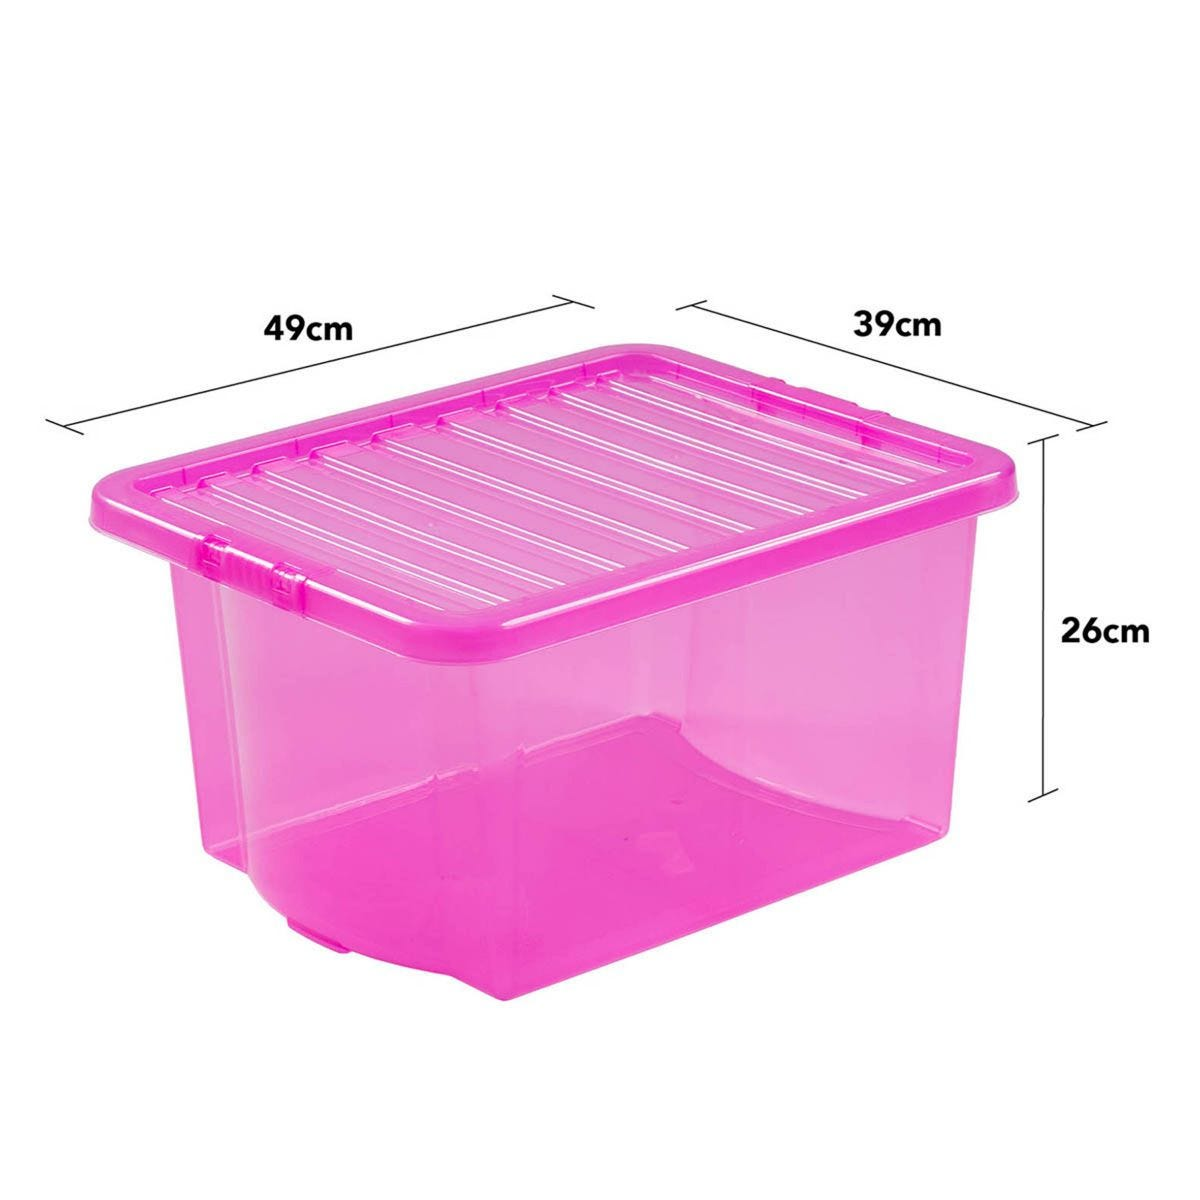 Wham Crystal Pink Storage Box with Lid 35L - Set of 5